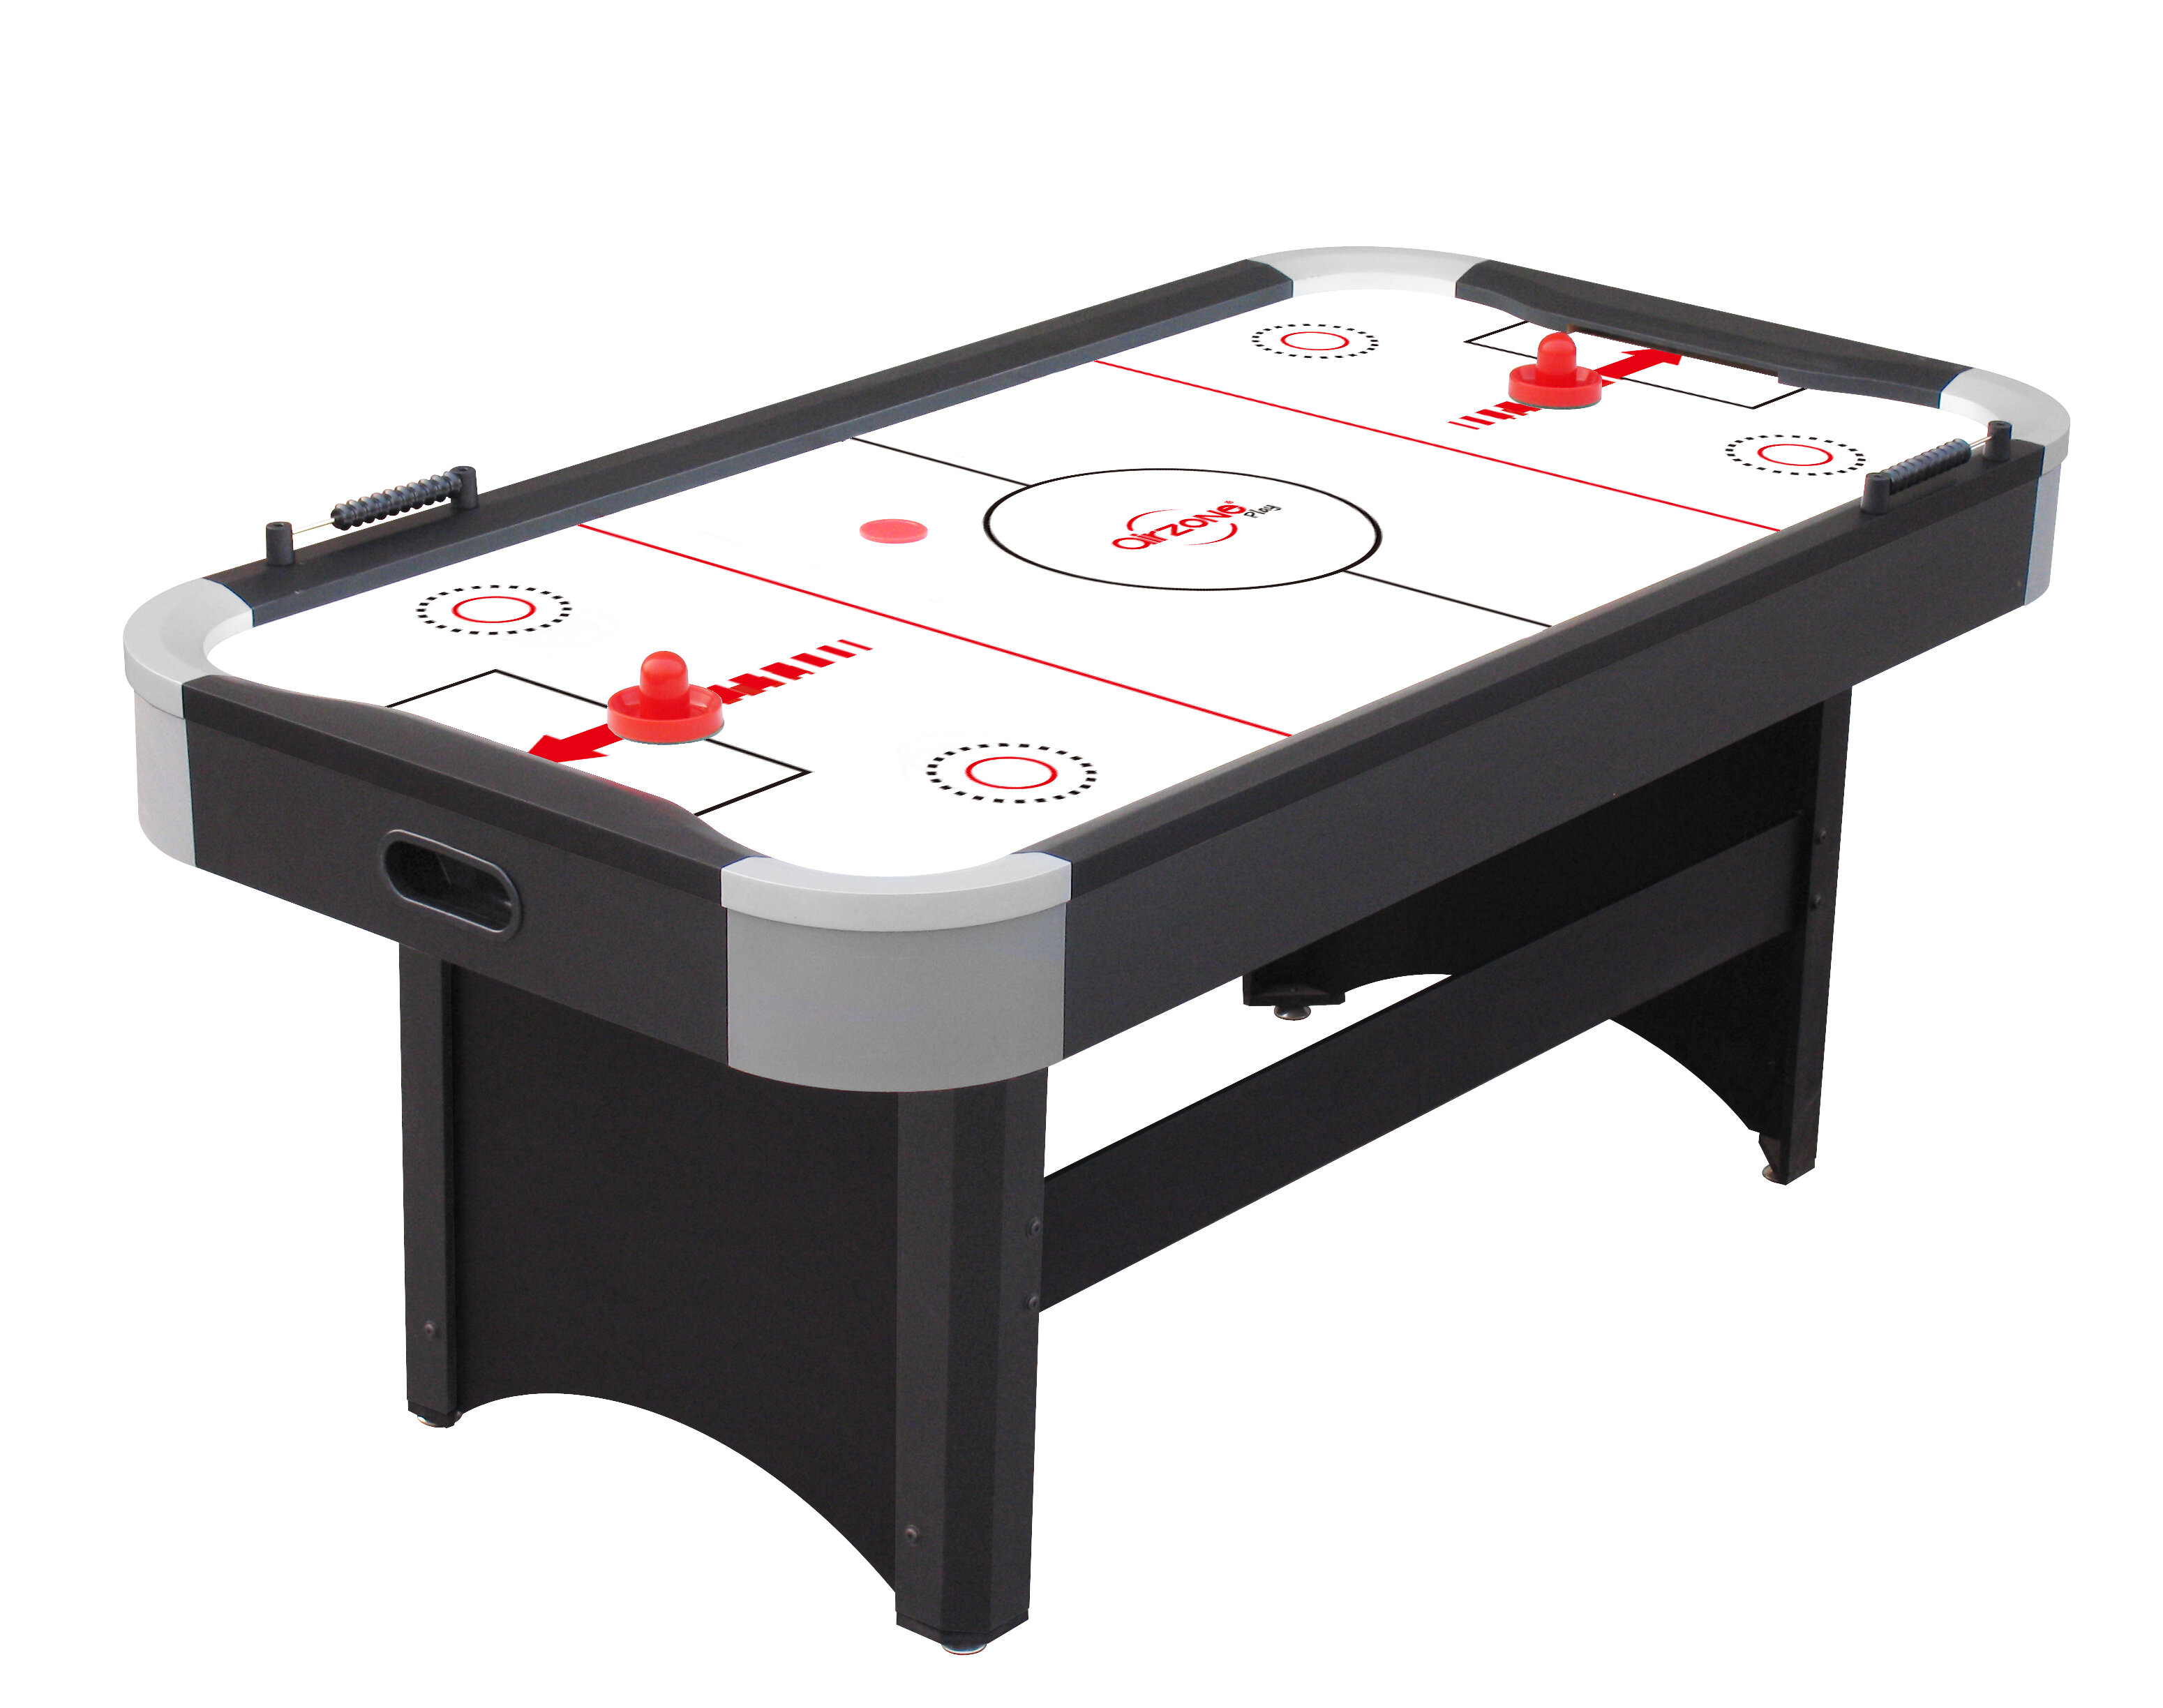 Airzone Play Airzone 6 Air Hockey Table Reviews Wayfair